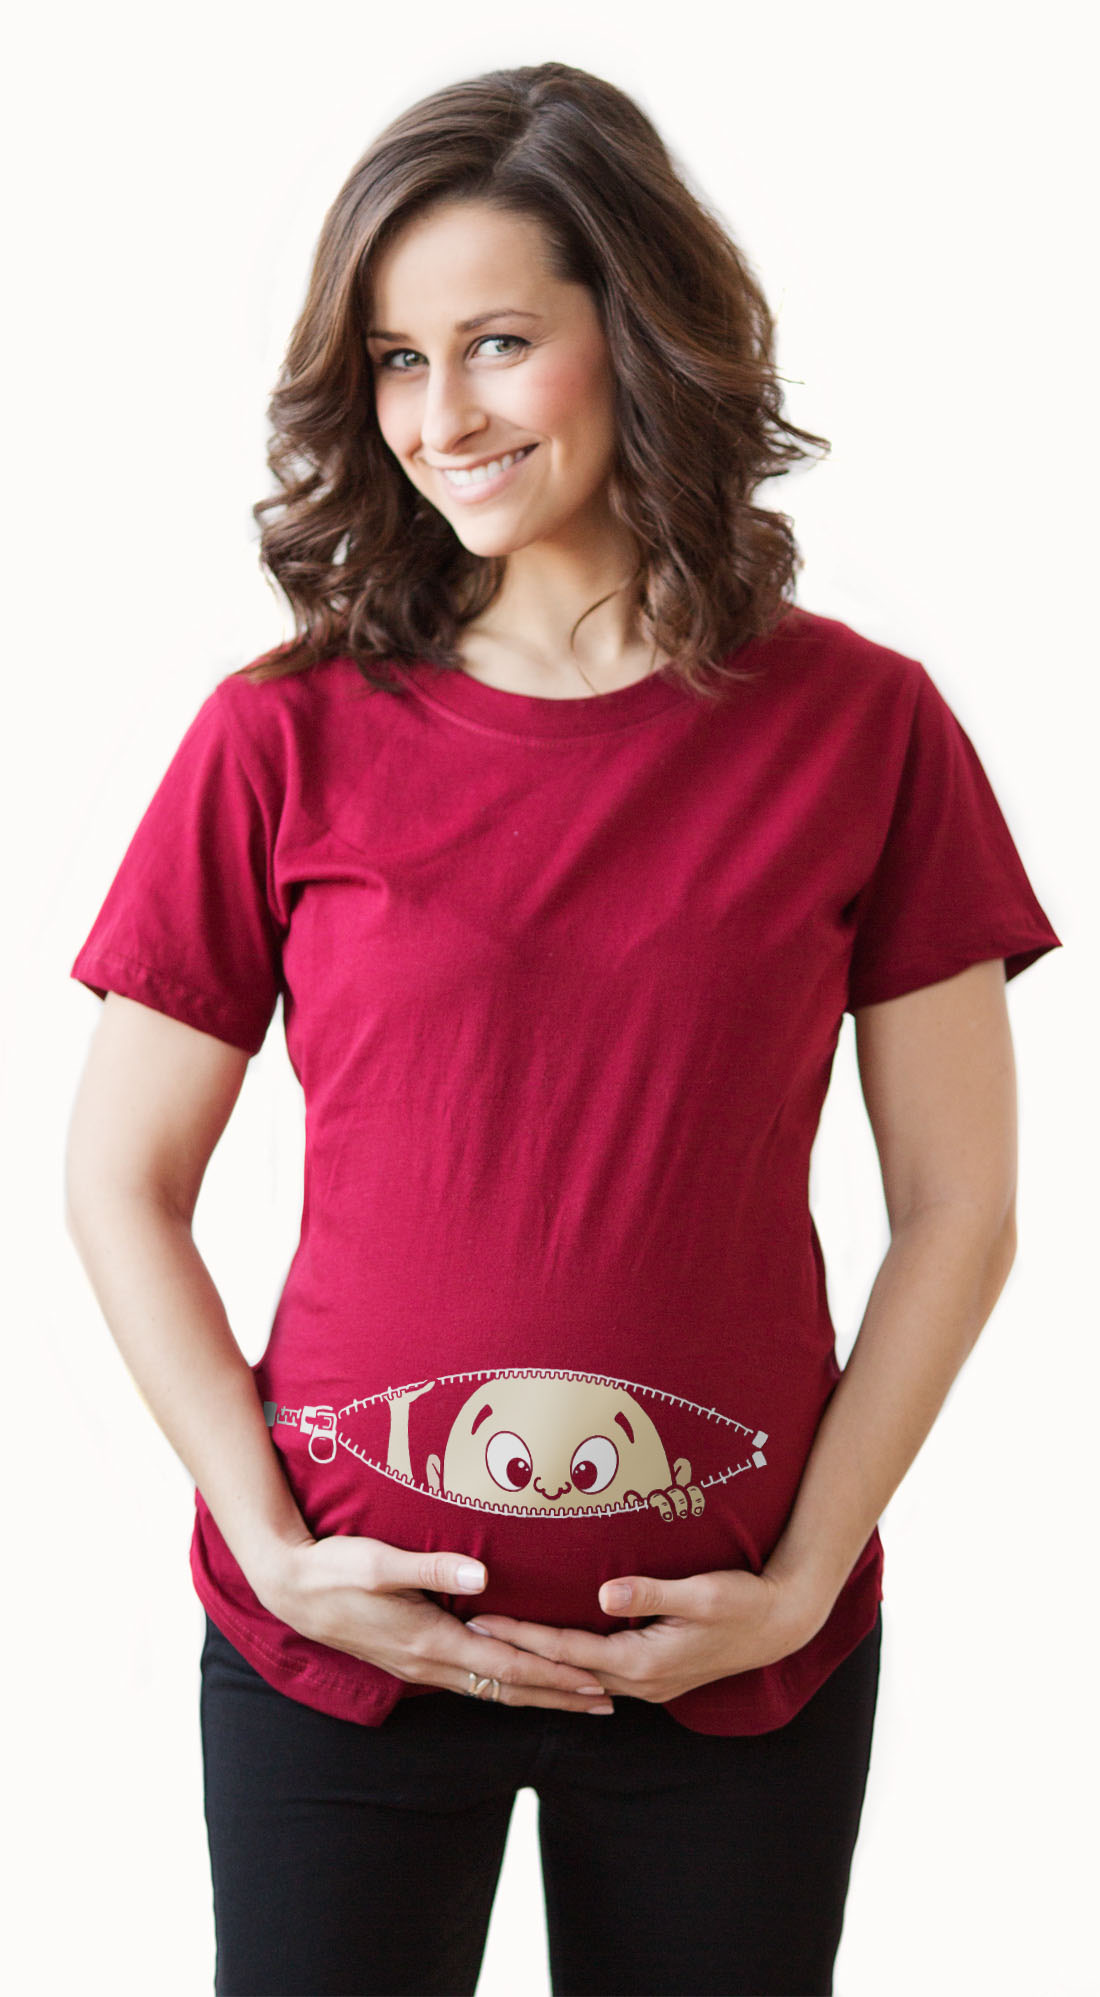 e6aed249 Crazy Dog Funny T-Shirts - Maternity Baby Peeking T Shirt Funny Pregnancy  Tee For Expecting Mothers - Walmart.com